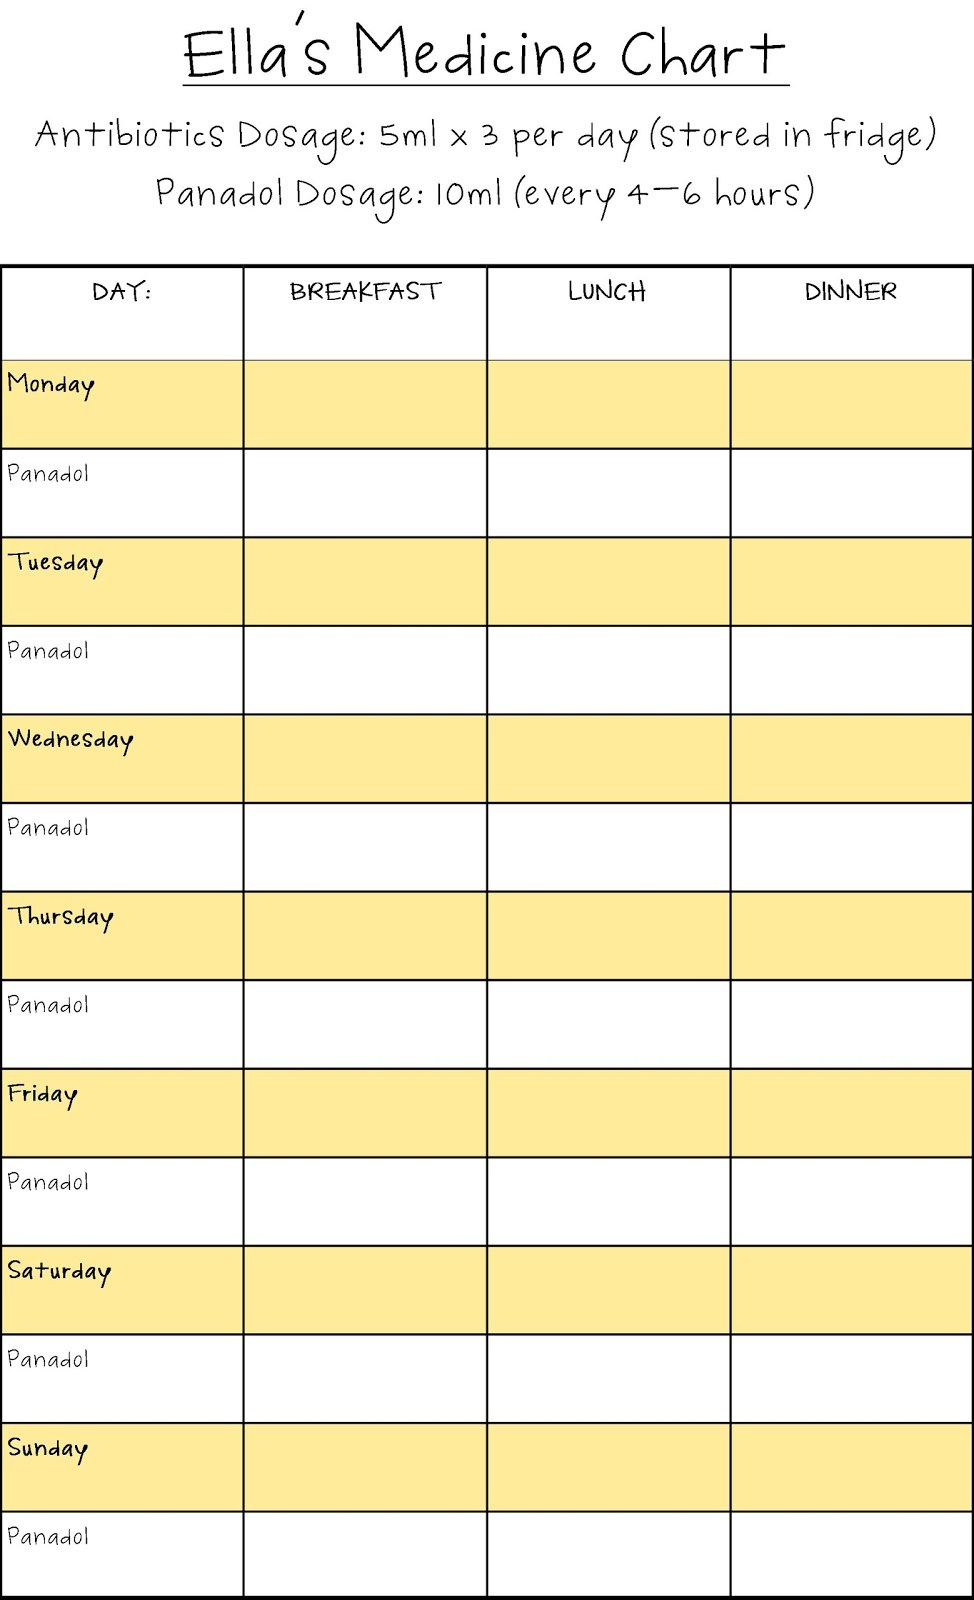 5 Best Images Of Free Printable Medication Schedule … – Jowo - Medication Chart Printable Free